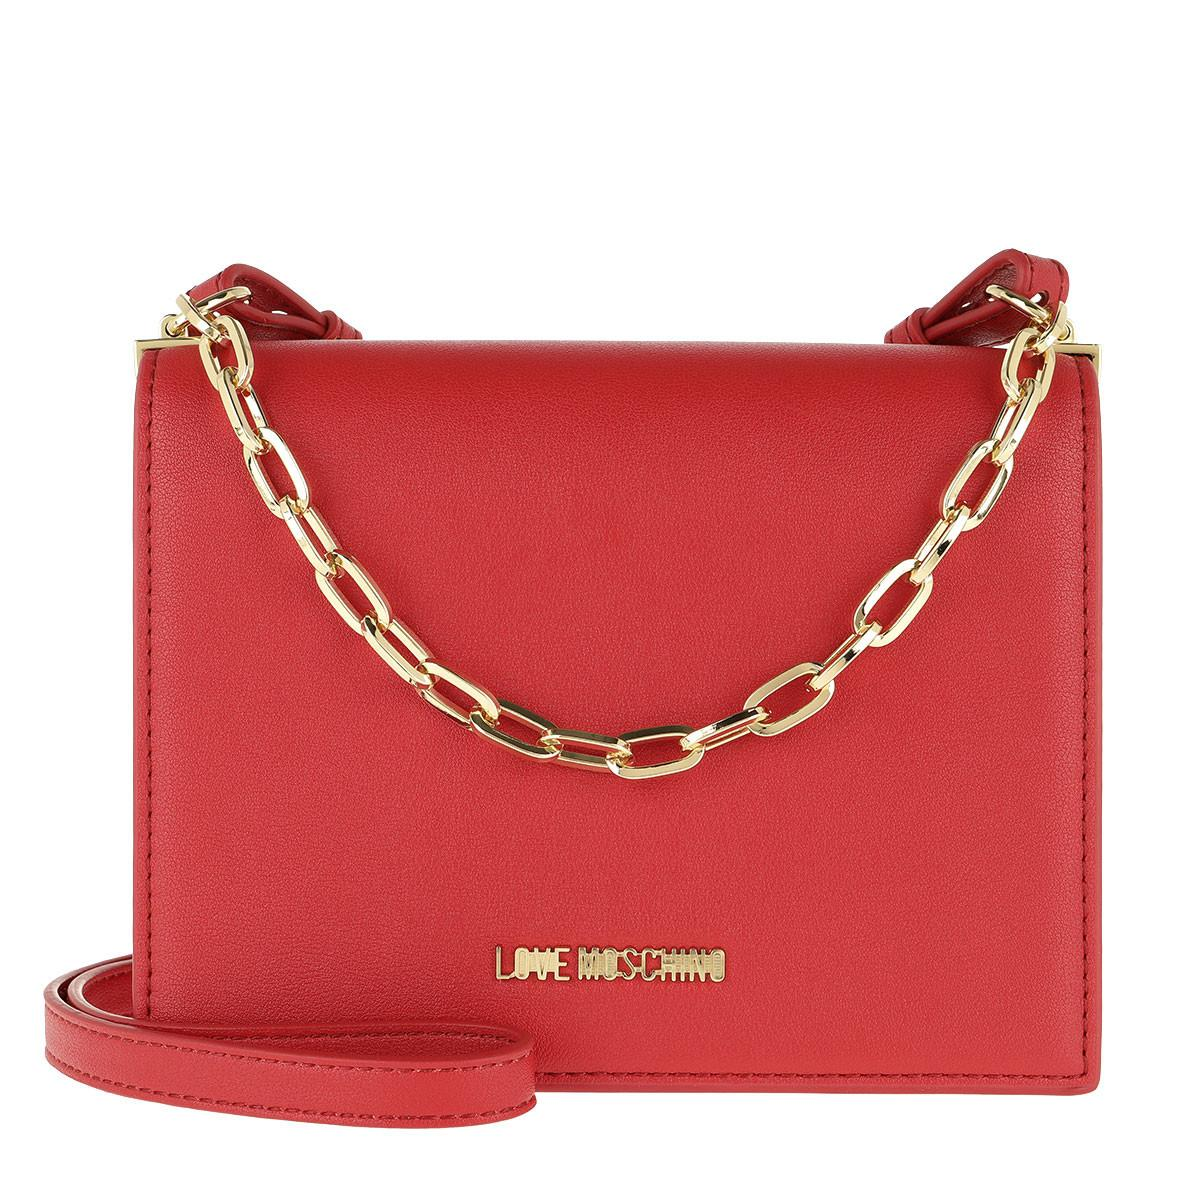 5c21f16ad9c9 Love Moschino Smooth Pu Chain Crossbody Bag Rosso in Red - Lyst